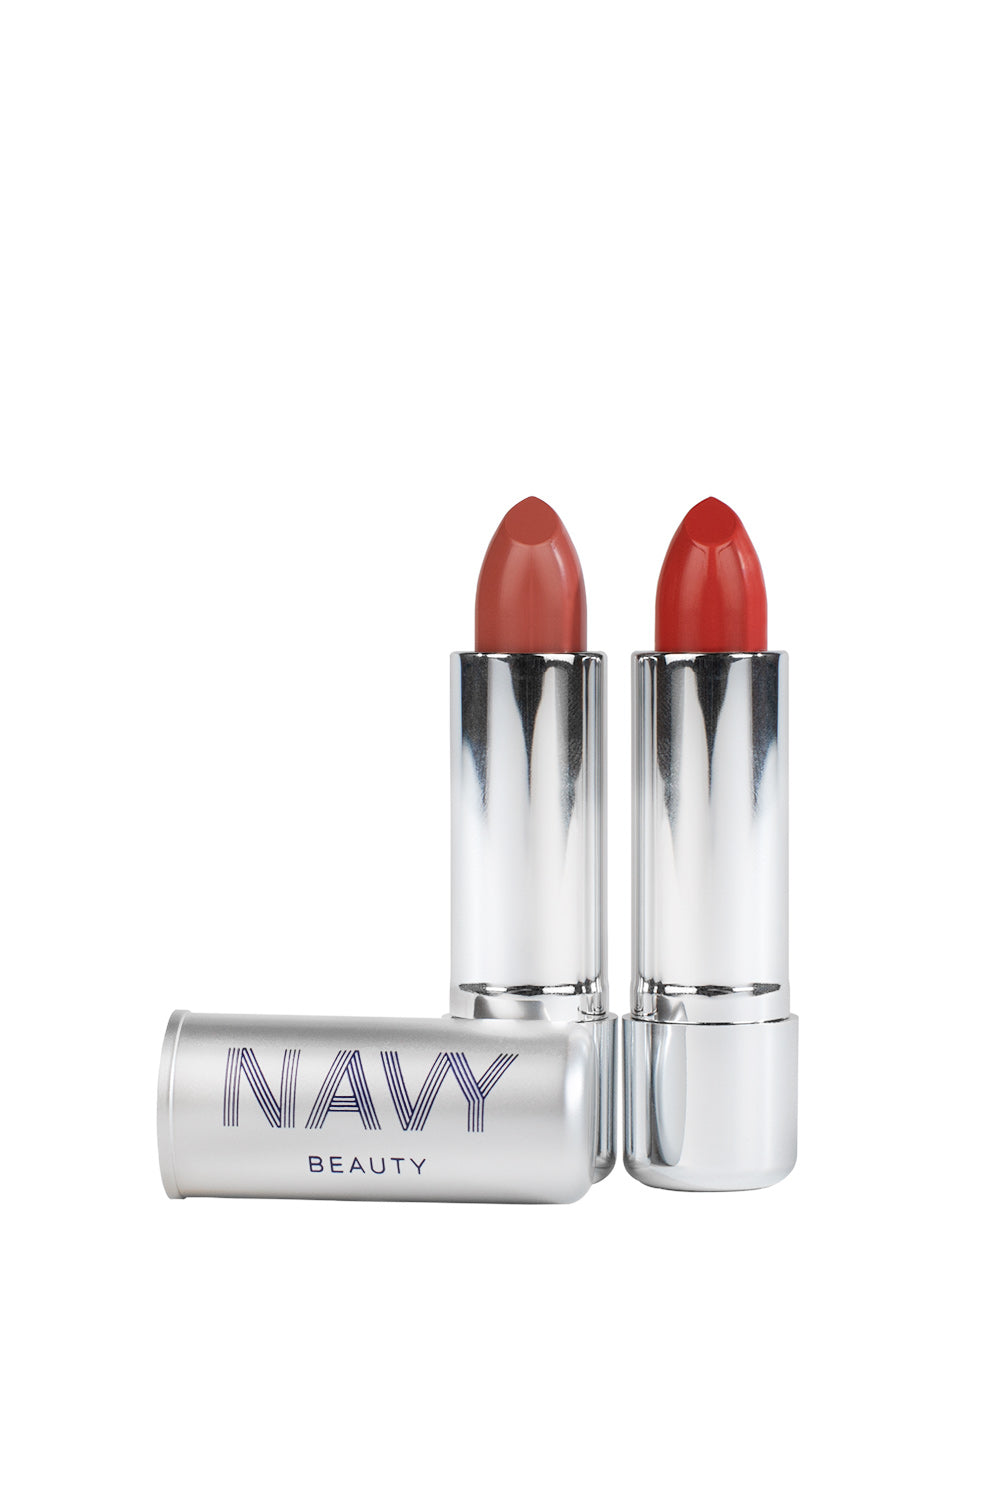 NAVY Beauty & Kylee Campbell Lip Color Duo: Catch Me Dancing & Noods